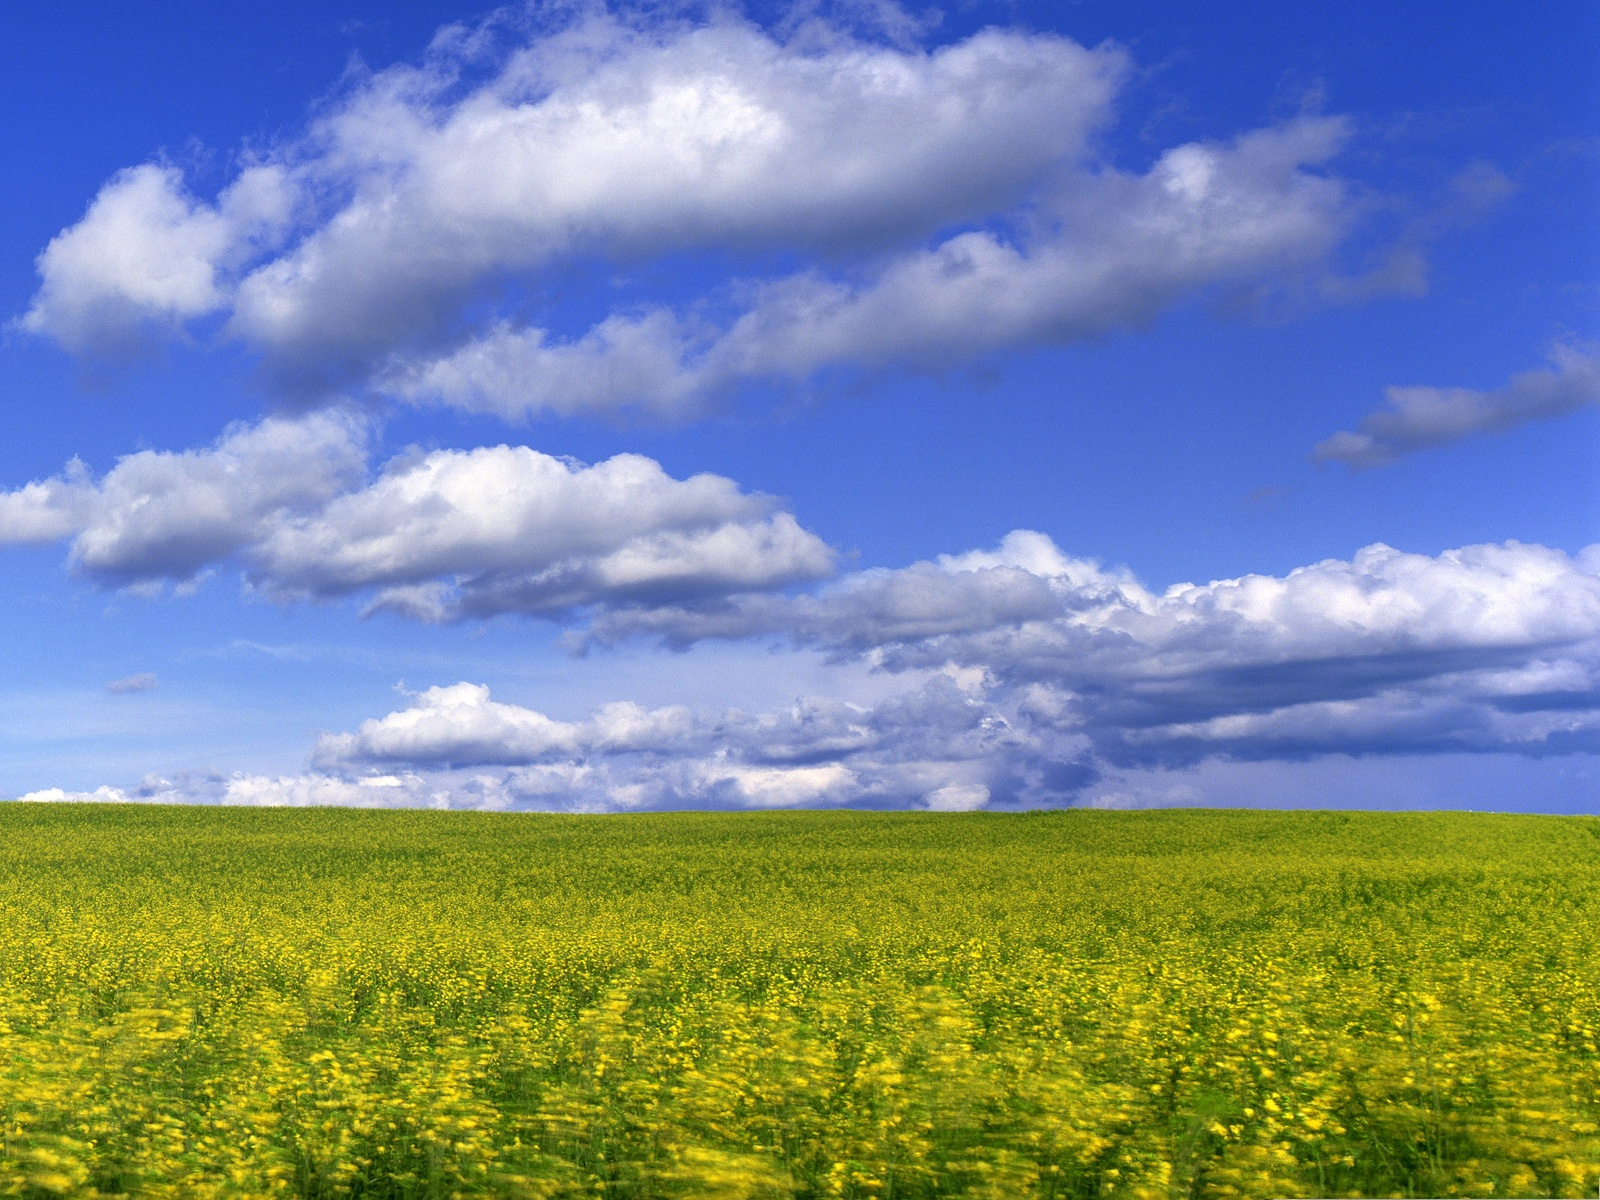 click to free download the wallpaper--Mustard Flower Field, Yellow Flowers Under the Blue and Cloudless Sky 1600X1200 free wallpaper download